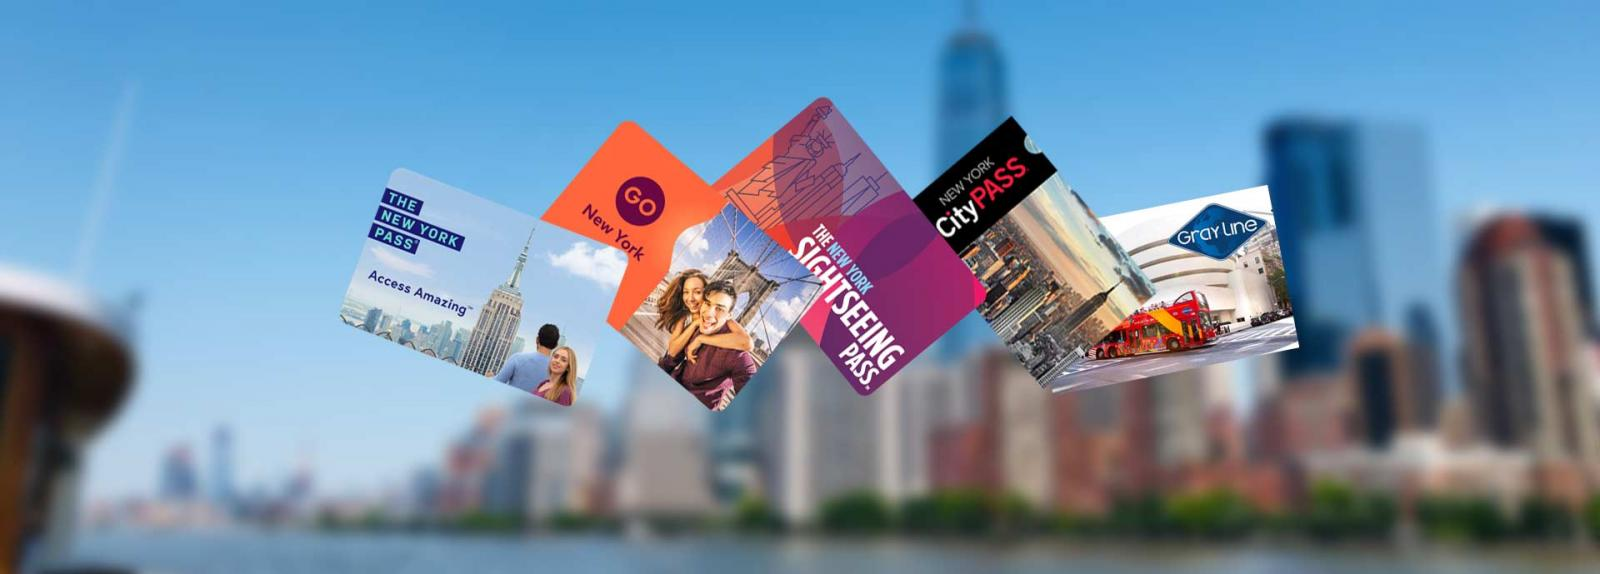 Comparison of the New York Pass, Go Explorer Pass, CityPASS, NYC Sightseeing Pass and FreeStyle Pass